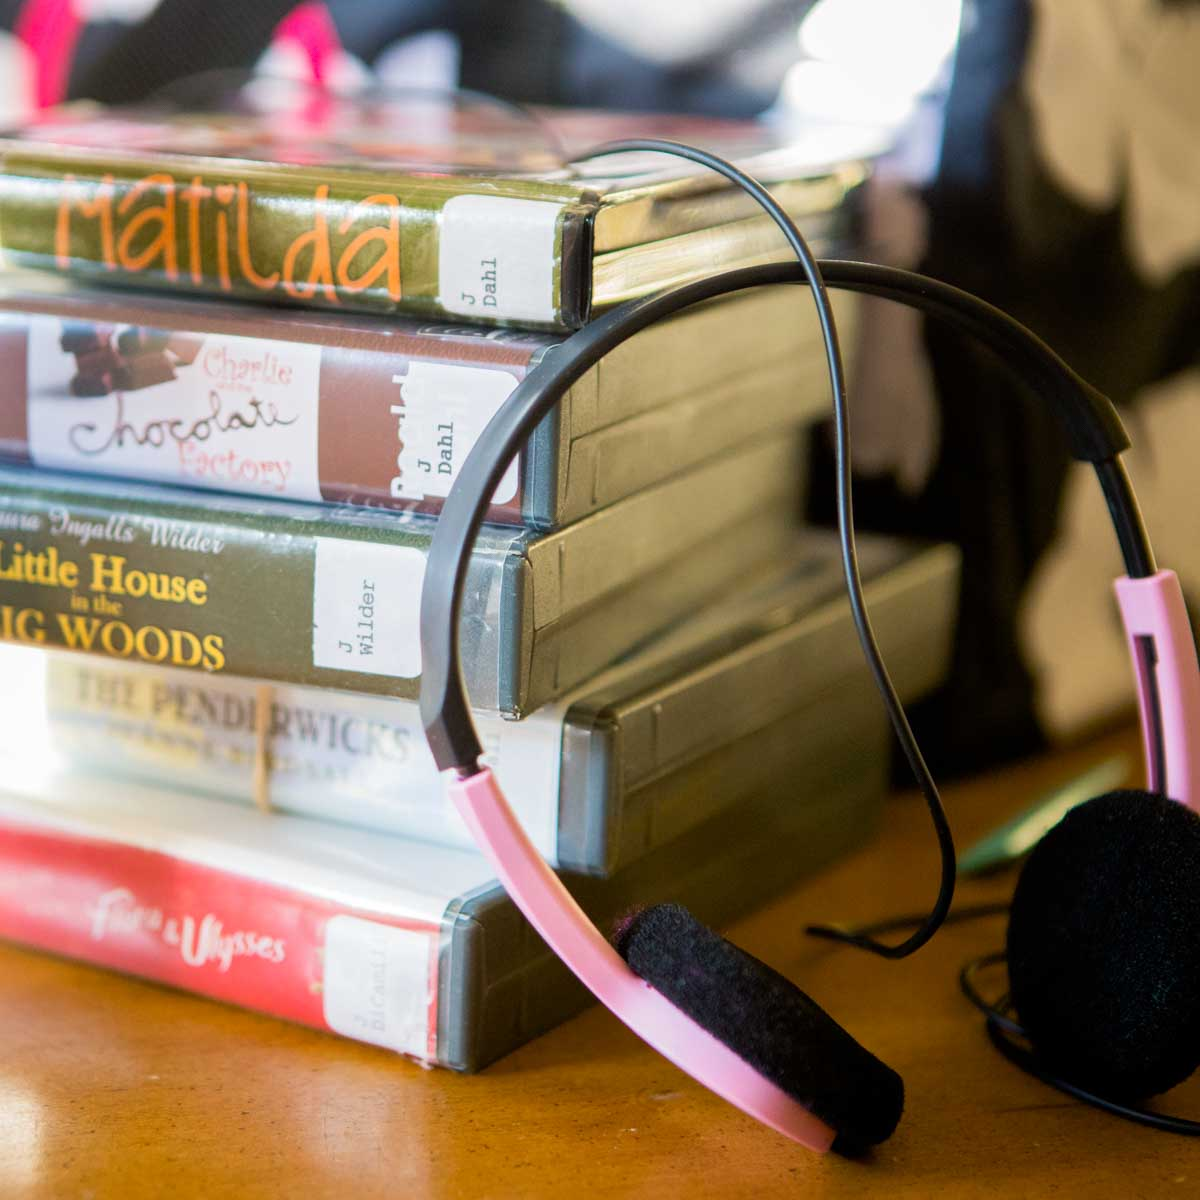 A stack of audiobooks from the library with a pair of pink headphones.